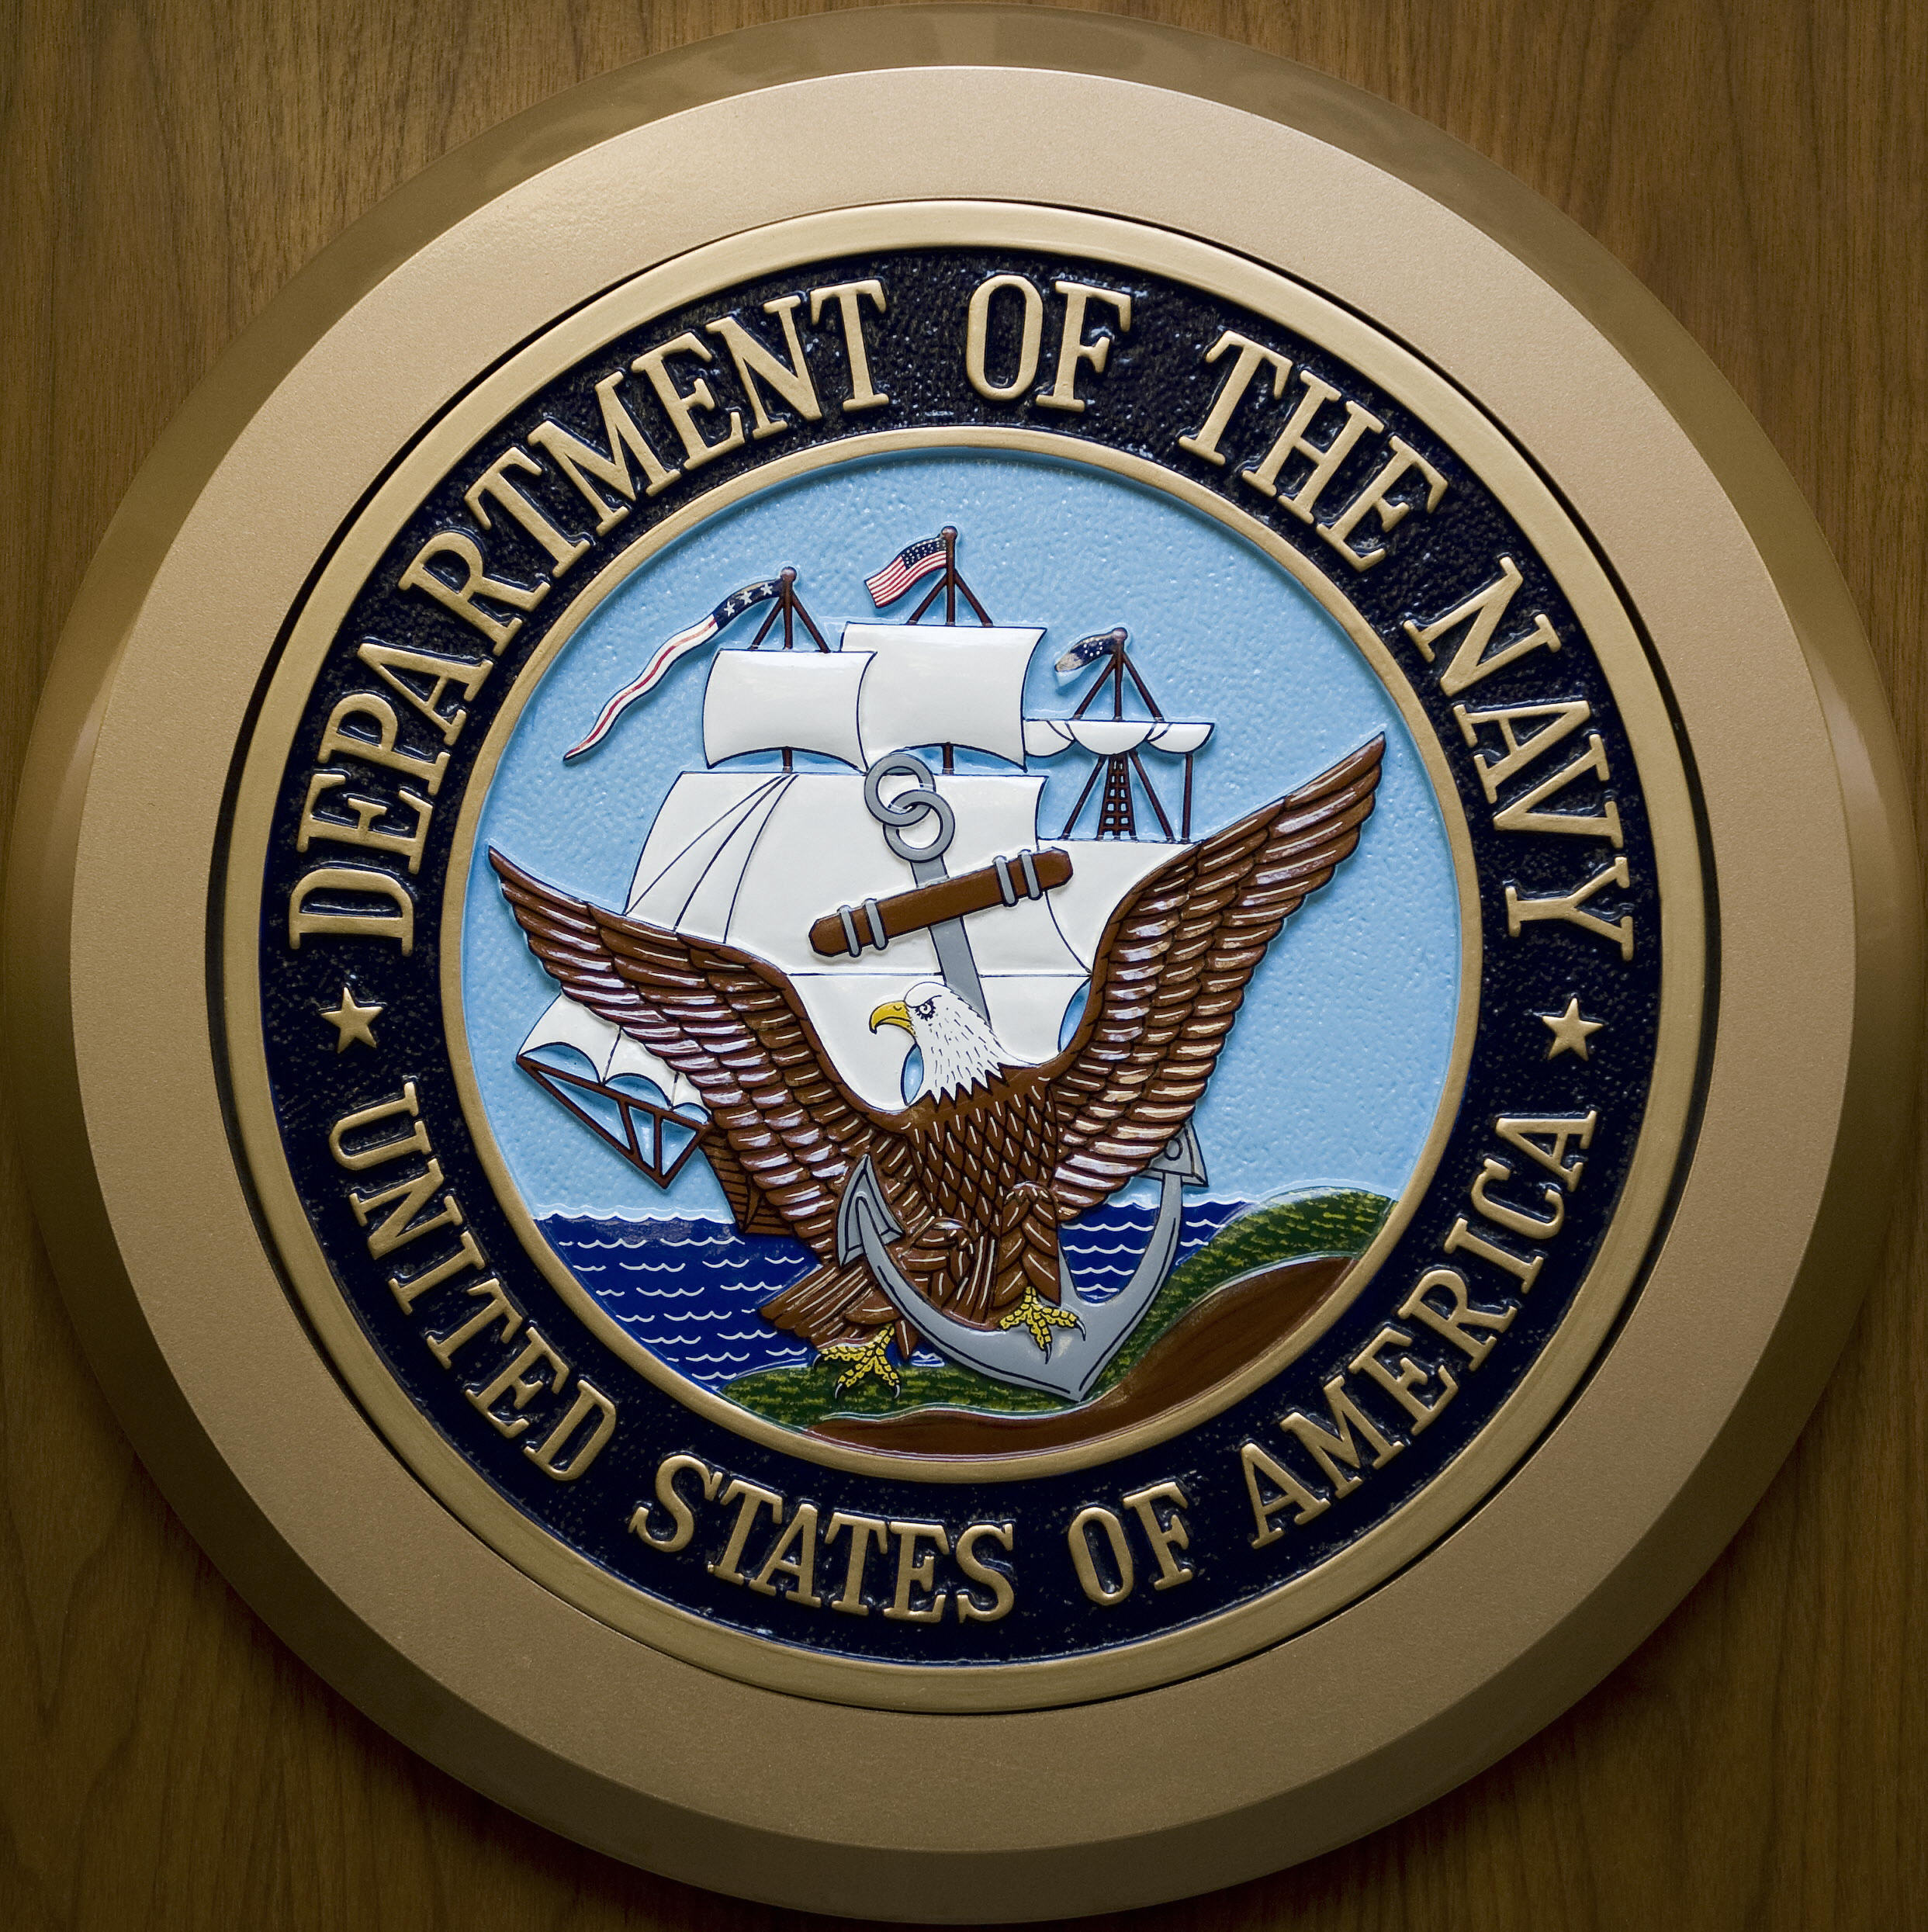 The US Department of the Navy logo hangs on the wall at the Pentagon. (Getty)